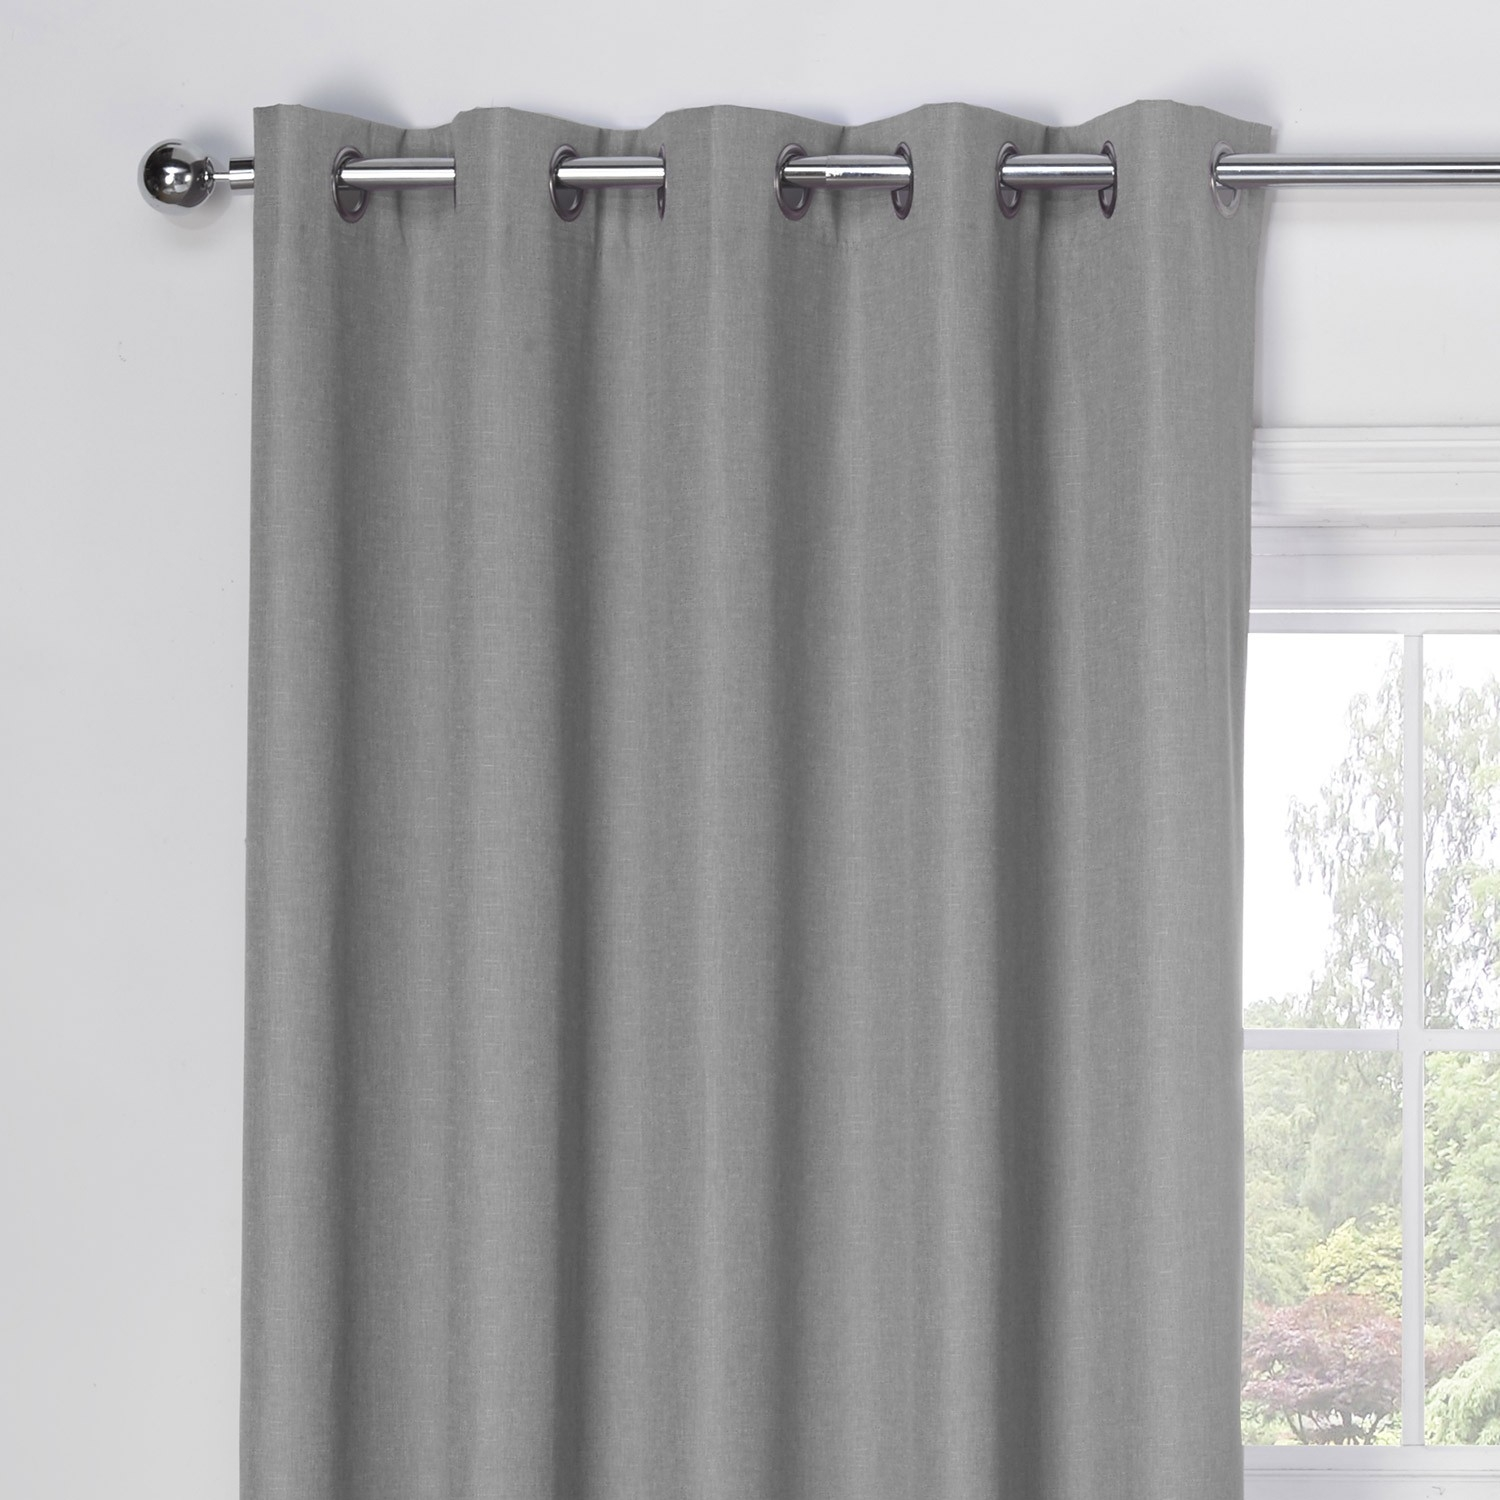 Luna Silver Grey Luxury Blackout Eyelet Curtains Pair Julian Throughout Grey Eyelet Curtains (Image 16 of 25)